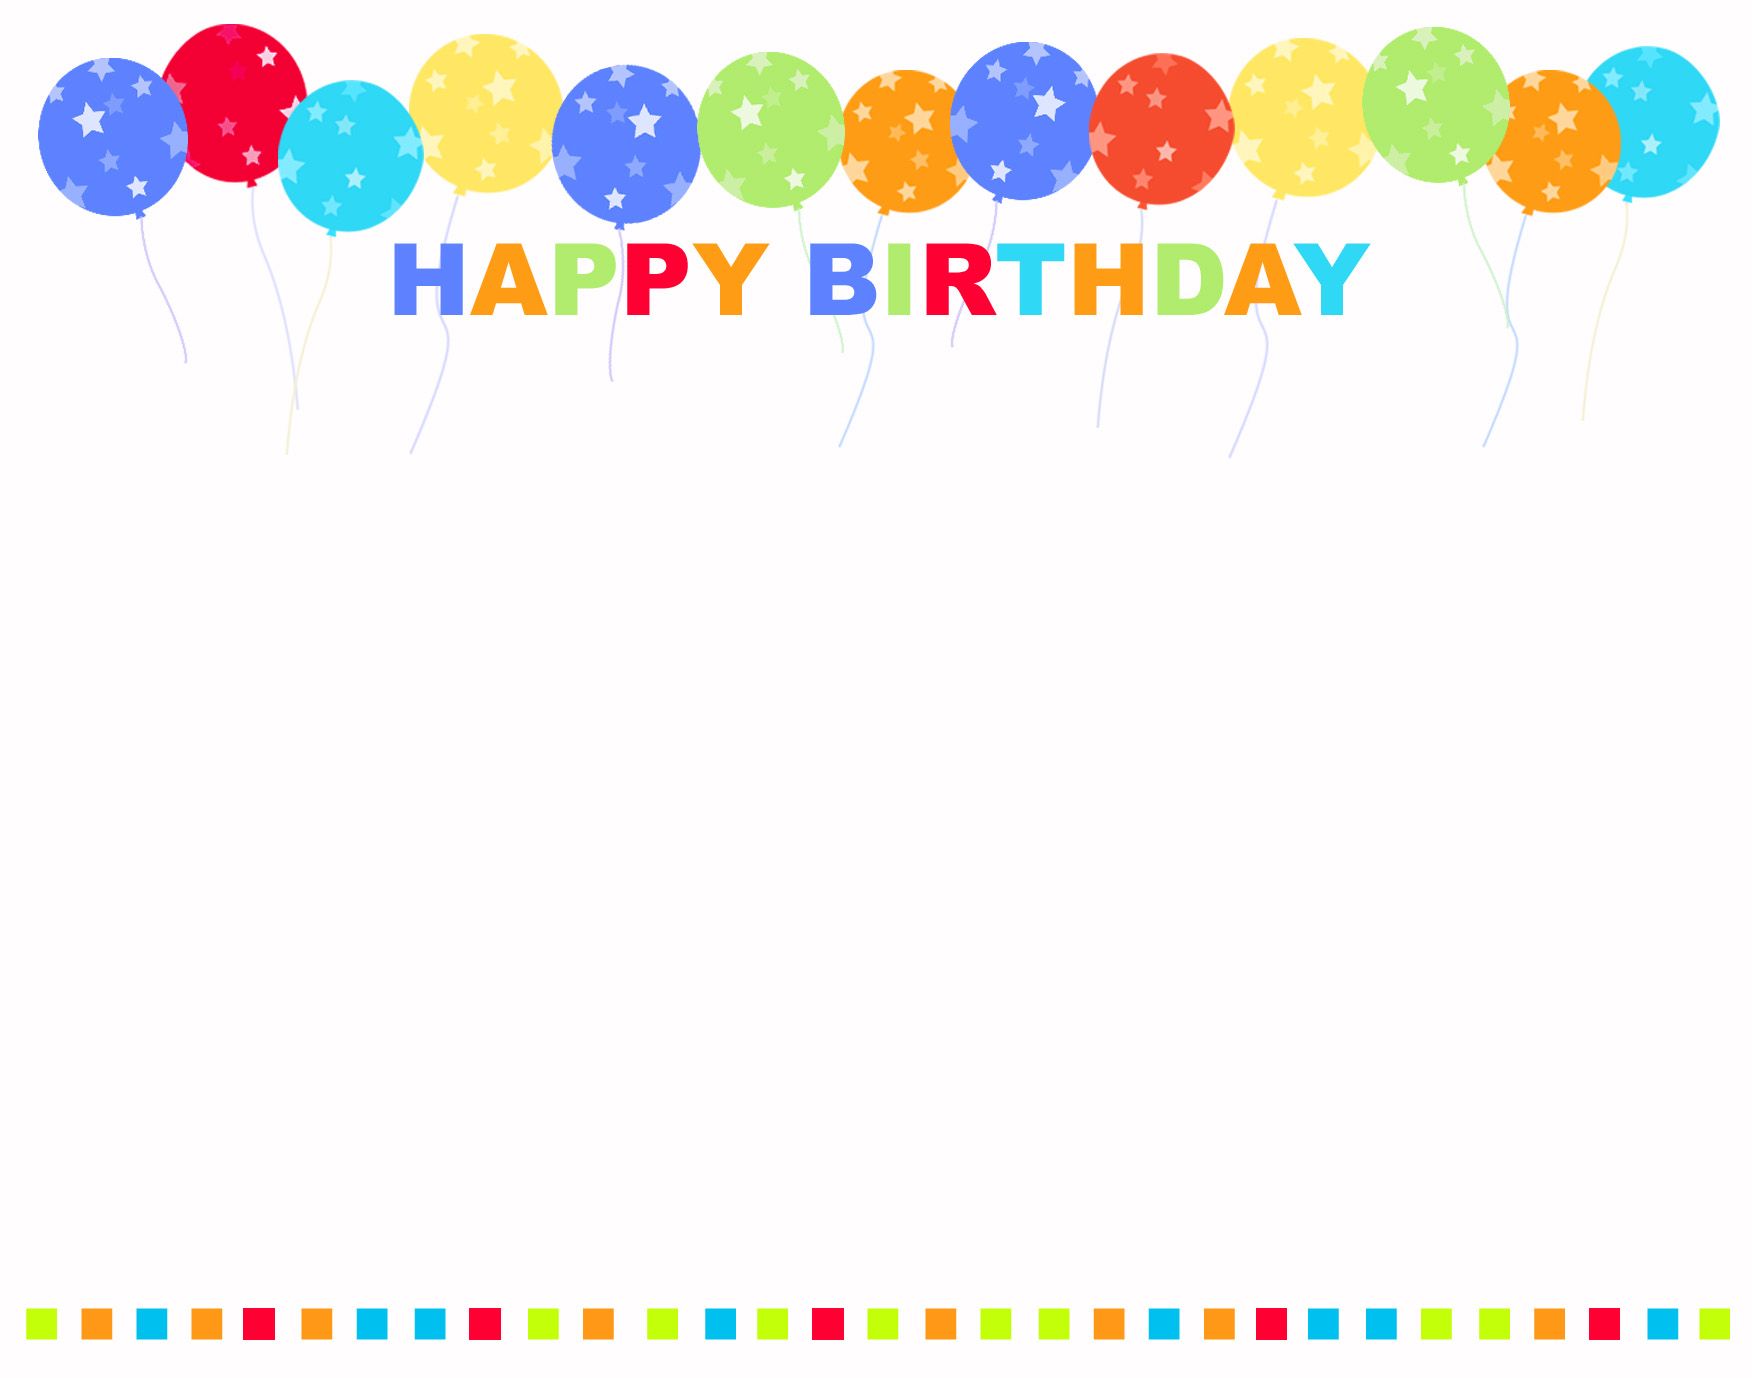 birthday background wallpaper hd ; Happy-birthday-border-birthday-wallpaper-hd-wallpapers-backgrounds-images-3-clip-art